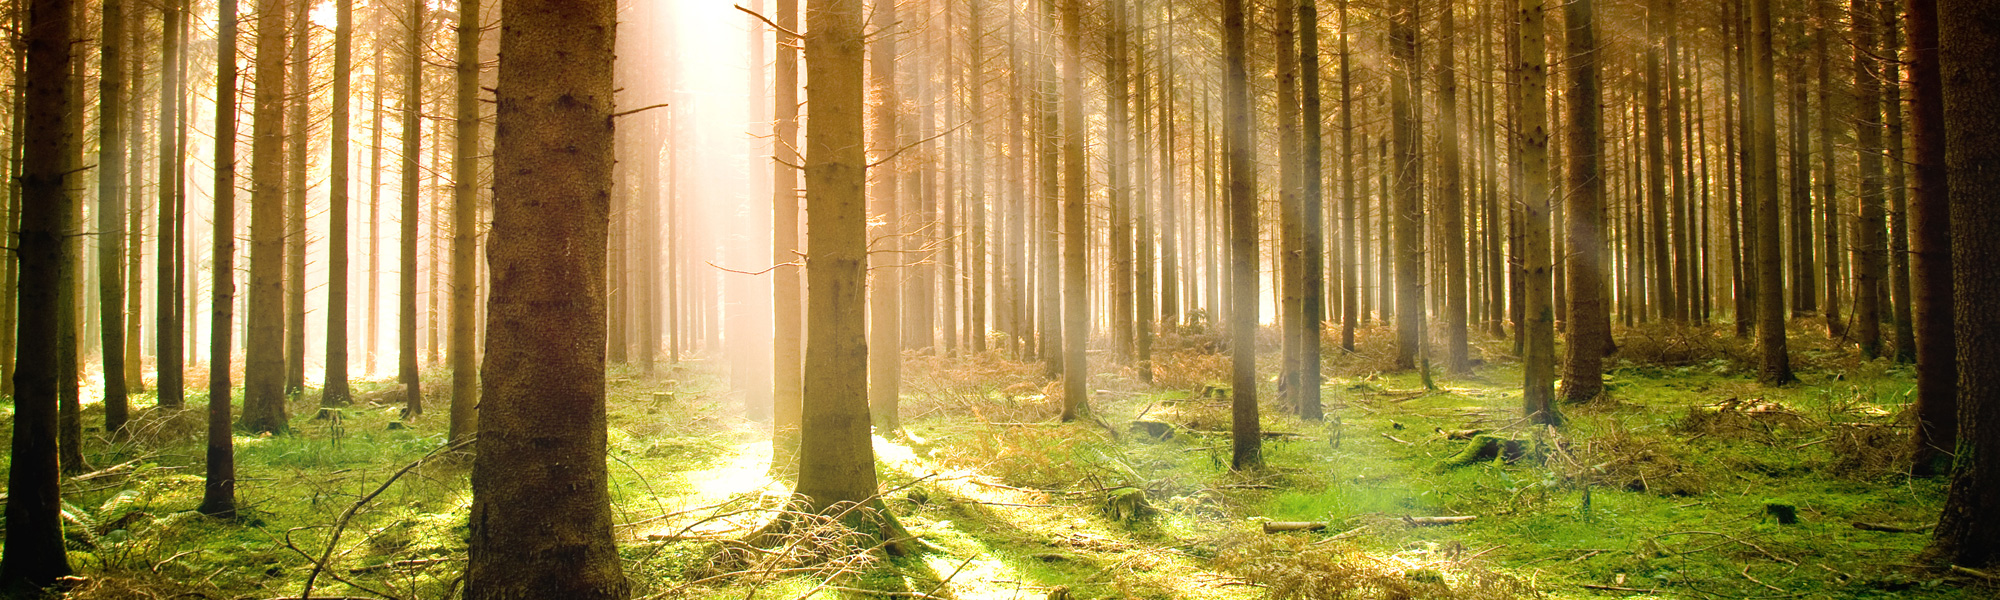 Forest in the morning sun